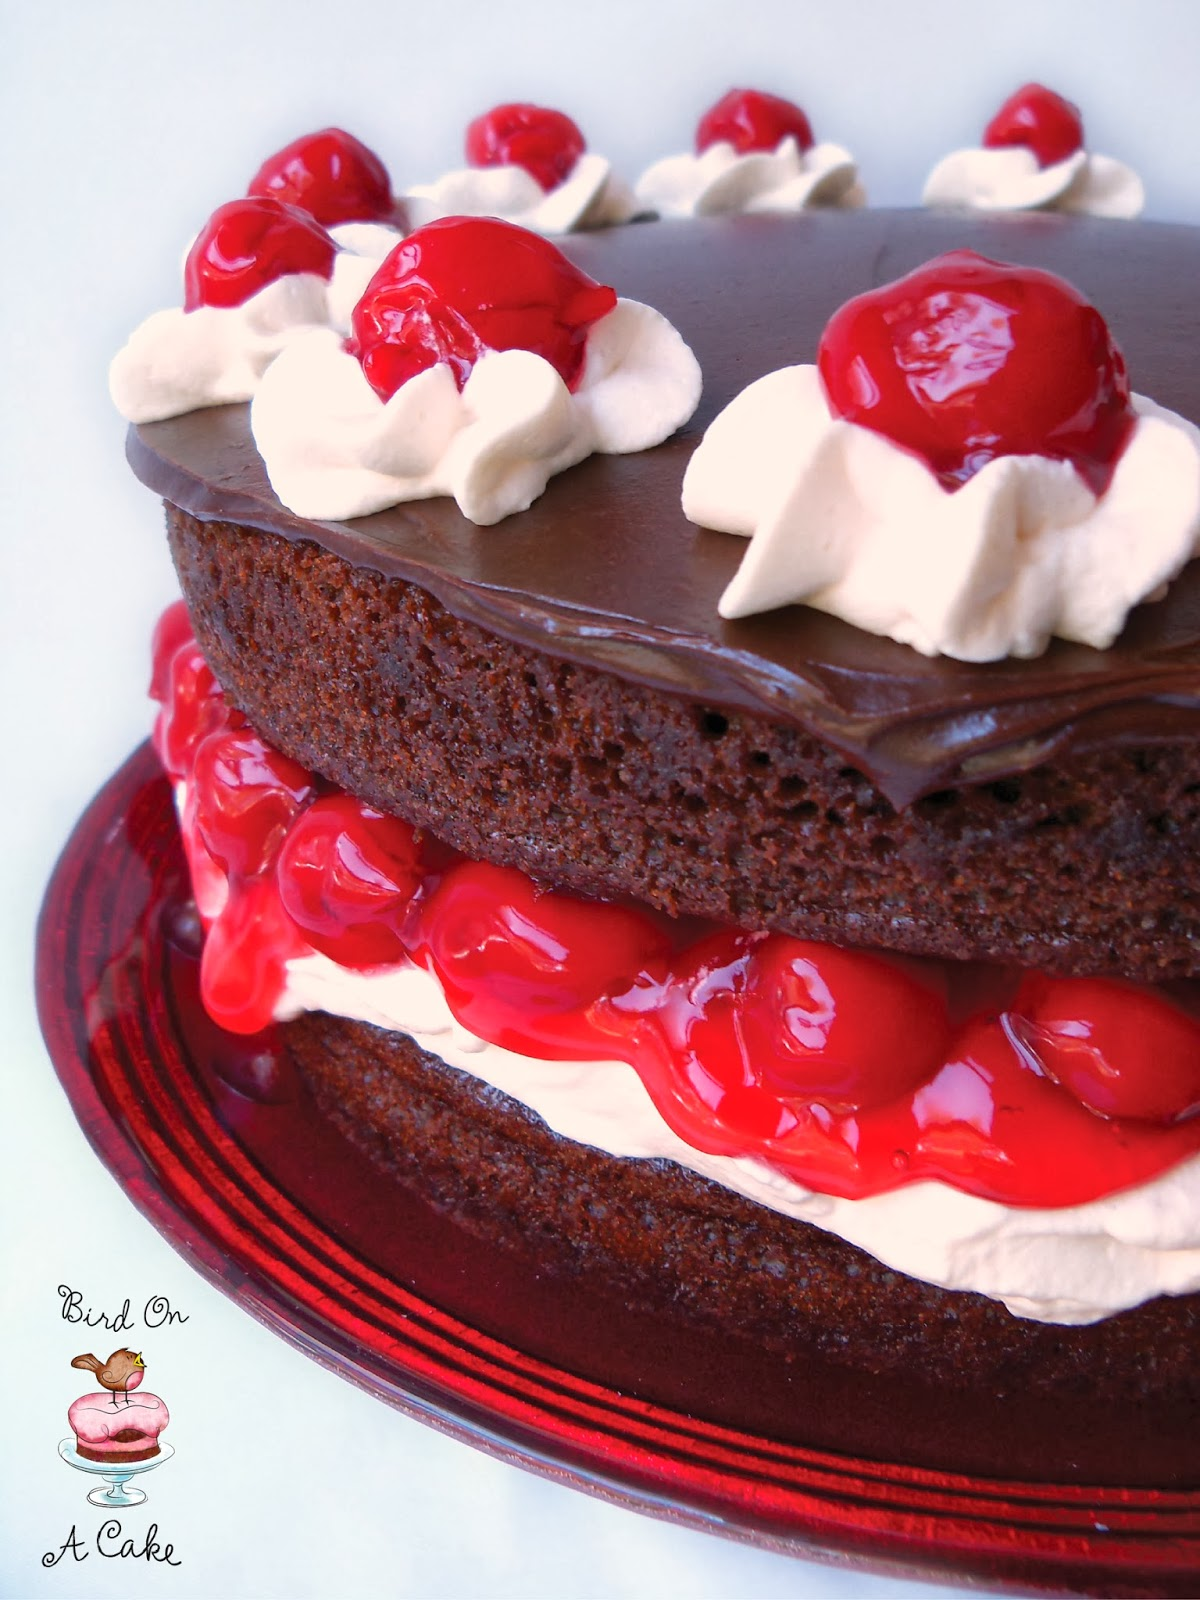 Bird On A Cake: Black Forest Cake with Chocolate Ganache